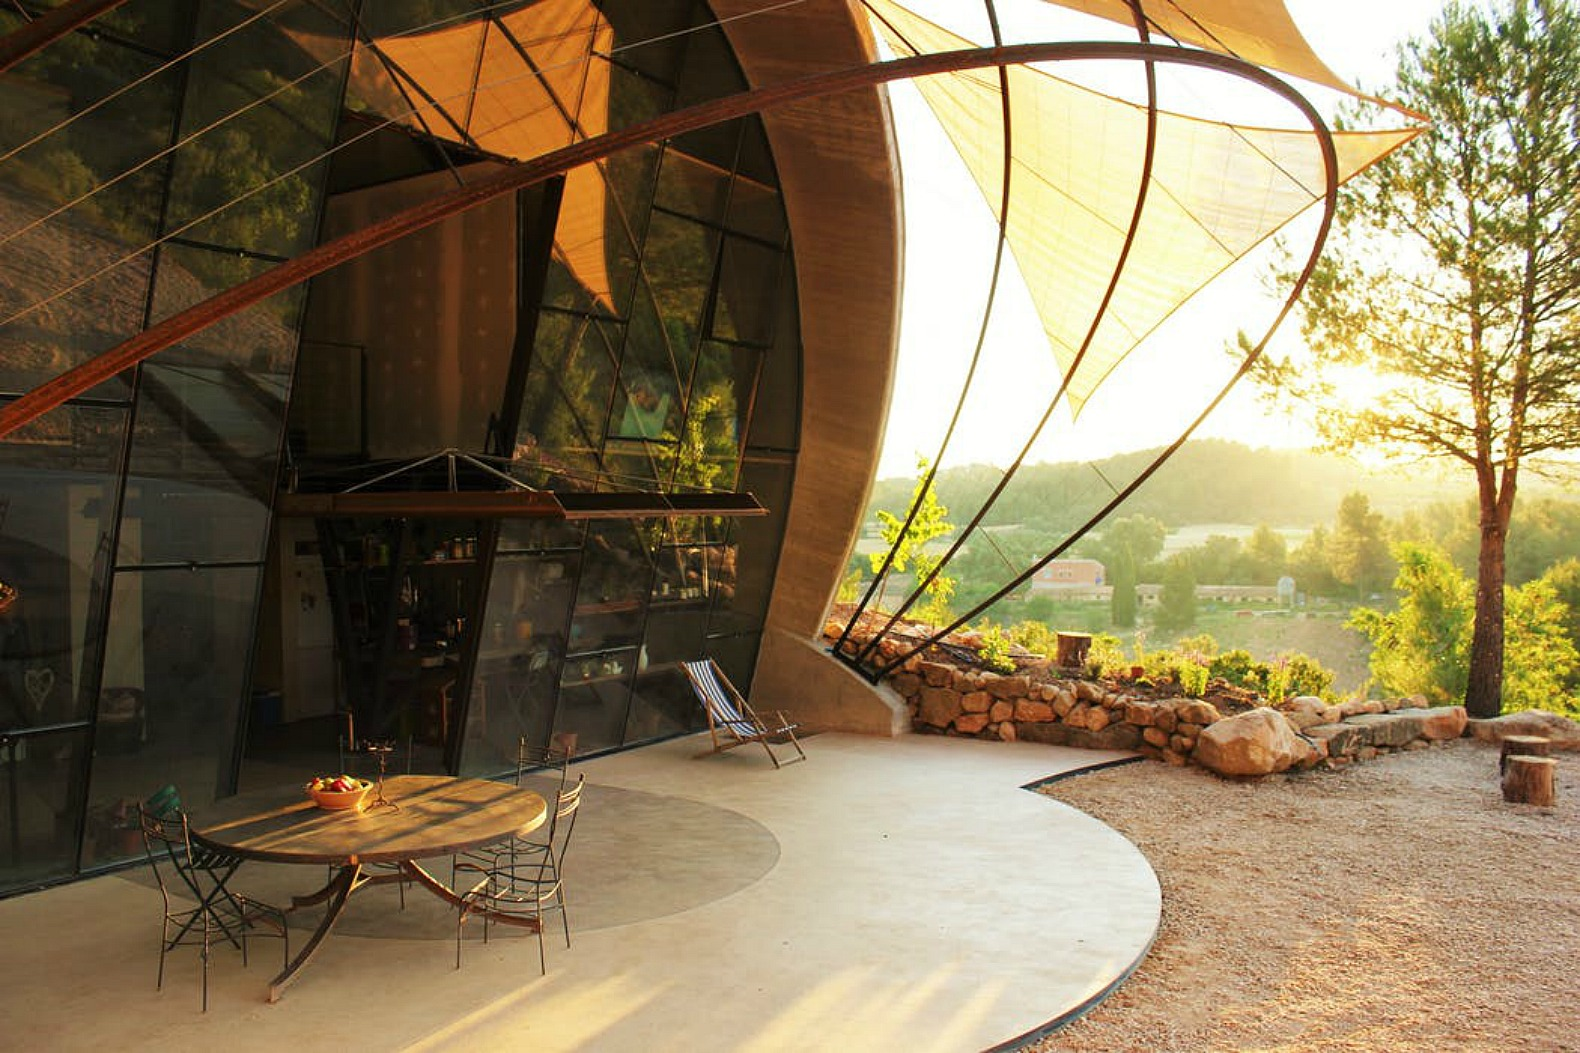 Snail-inspired retreat is the perfect escape for nature lovers